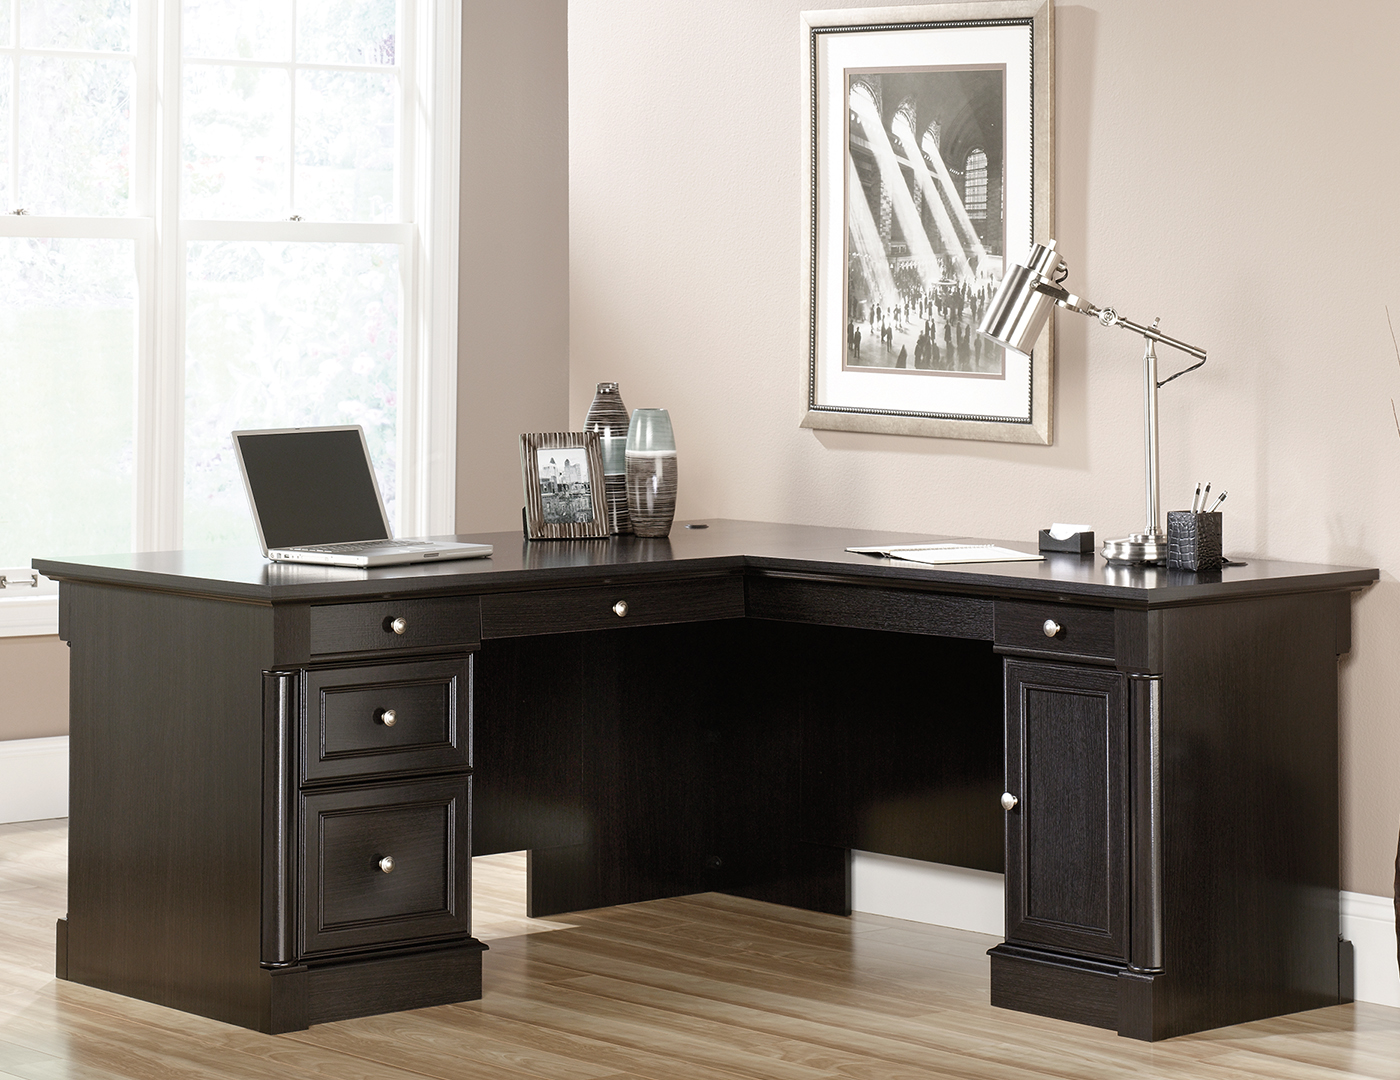 most decorative design l about house office gallery desk executive all of shape photos